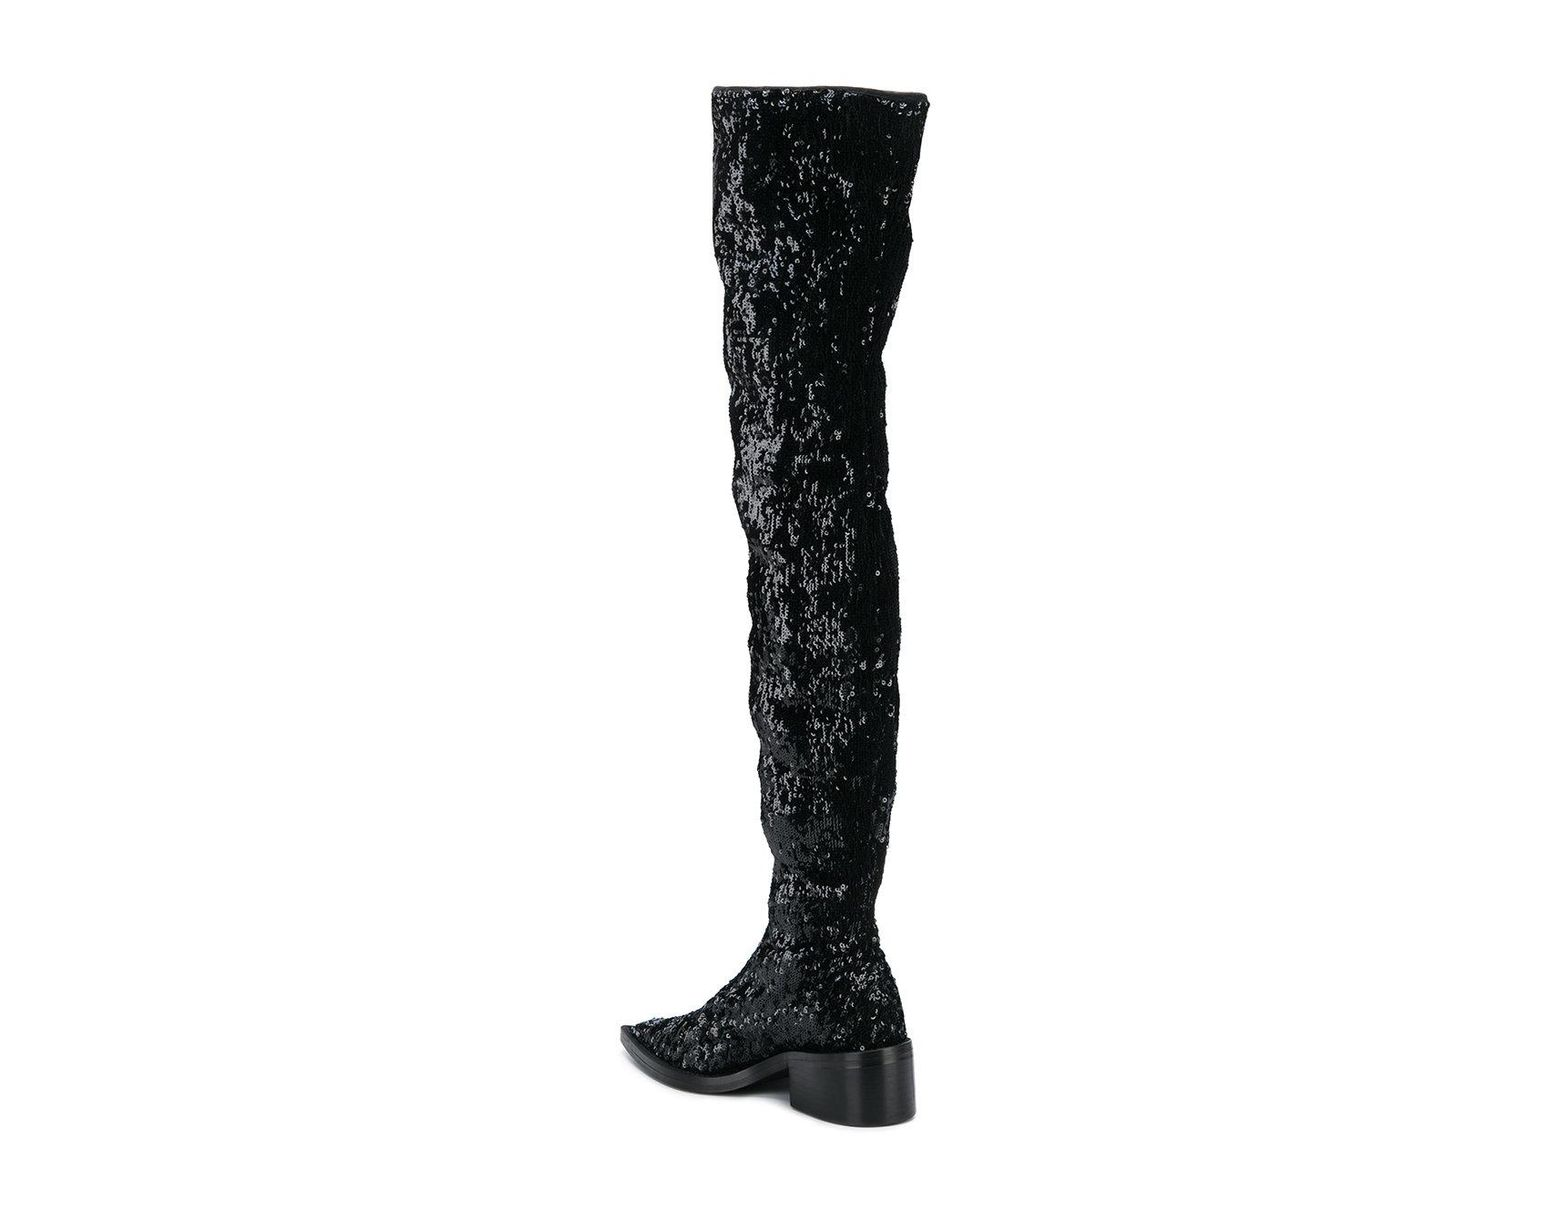 27da67885aed MM6 by Maison Martin Margiela Sequin Over The Knee Boots in Black - Lyst